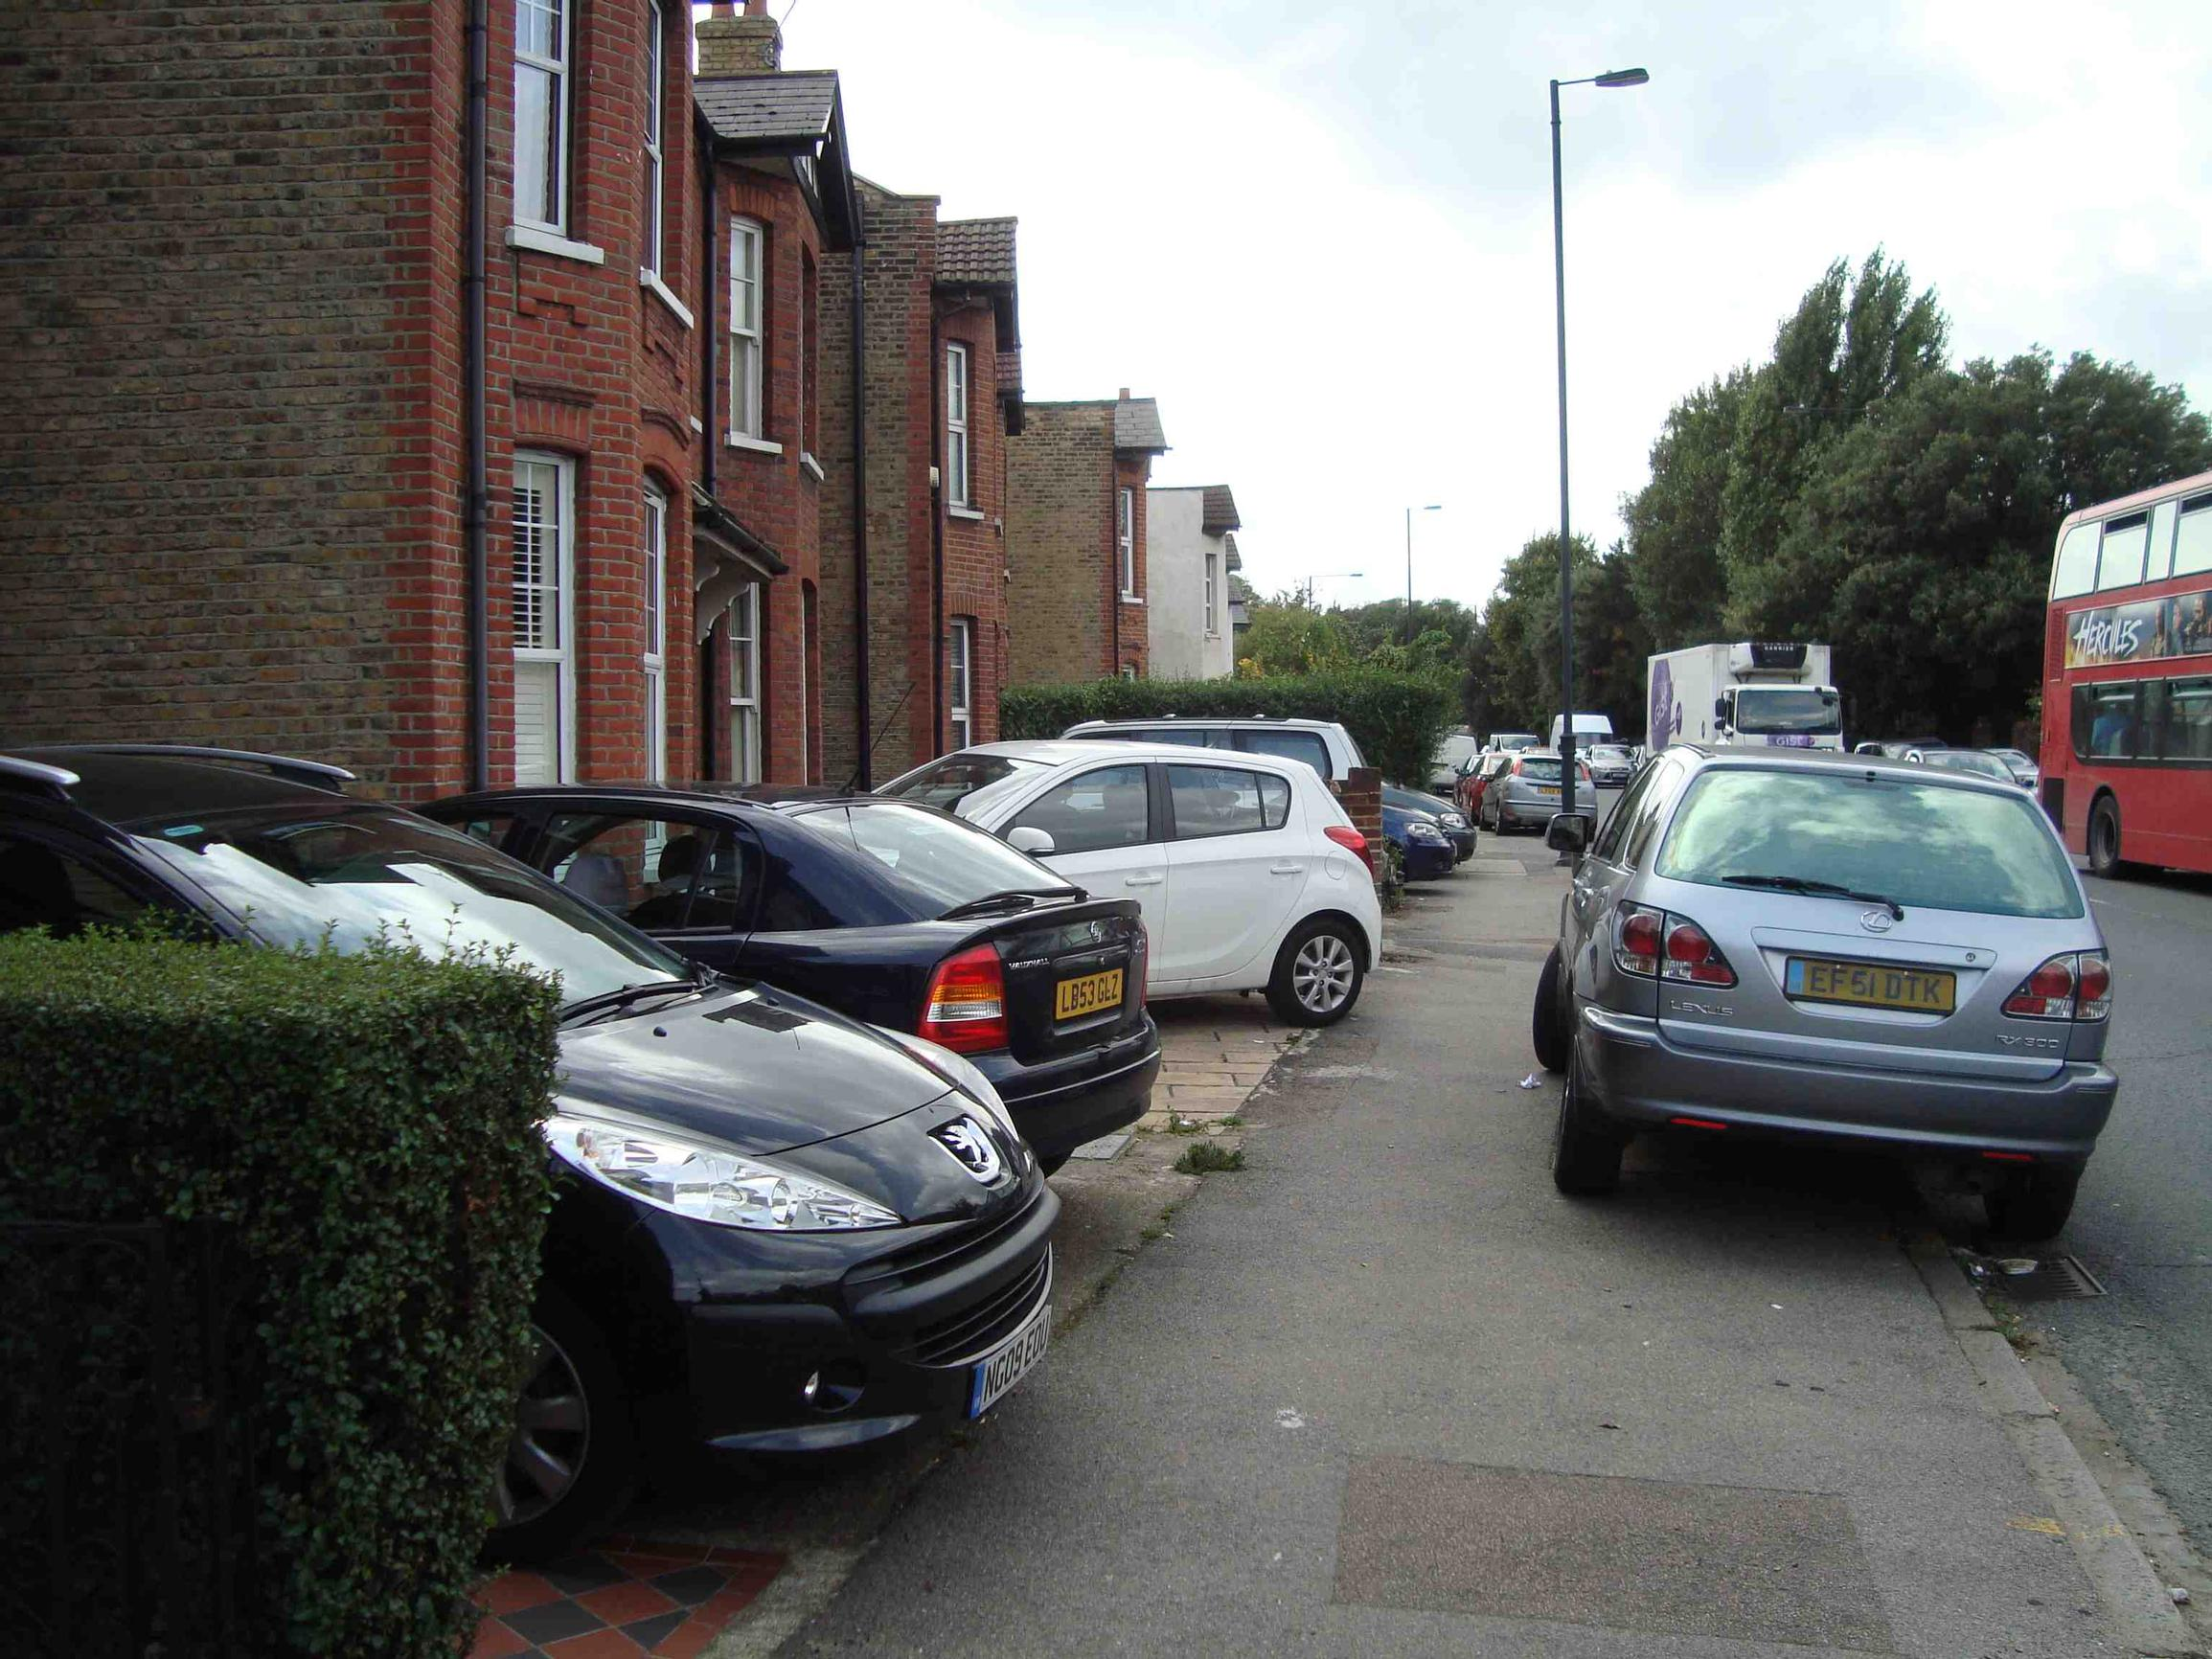 Parking on front gardens, with the need for crossovers and dropped kerbs reduces the amount and flexibility of parking space that is publicly available in the street.